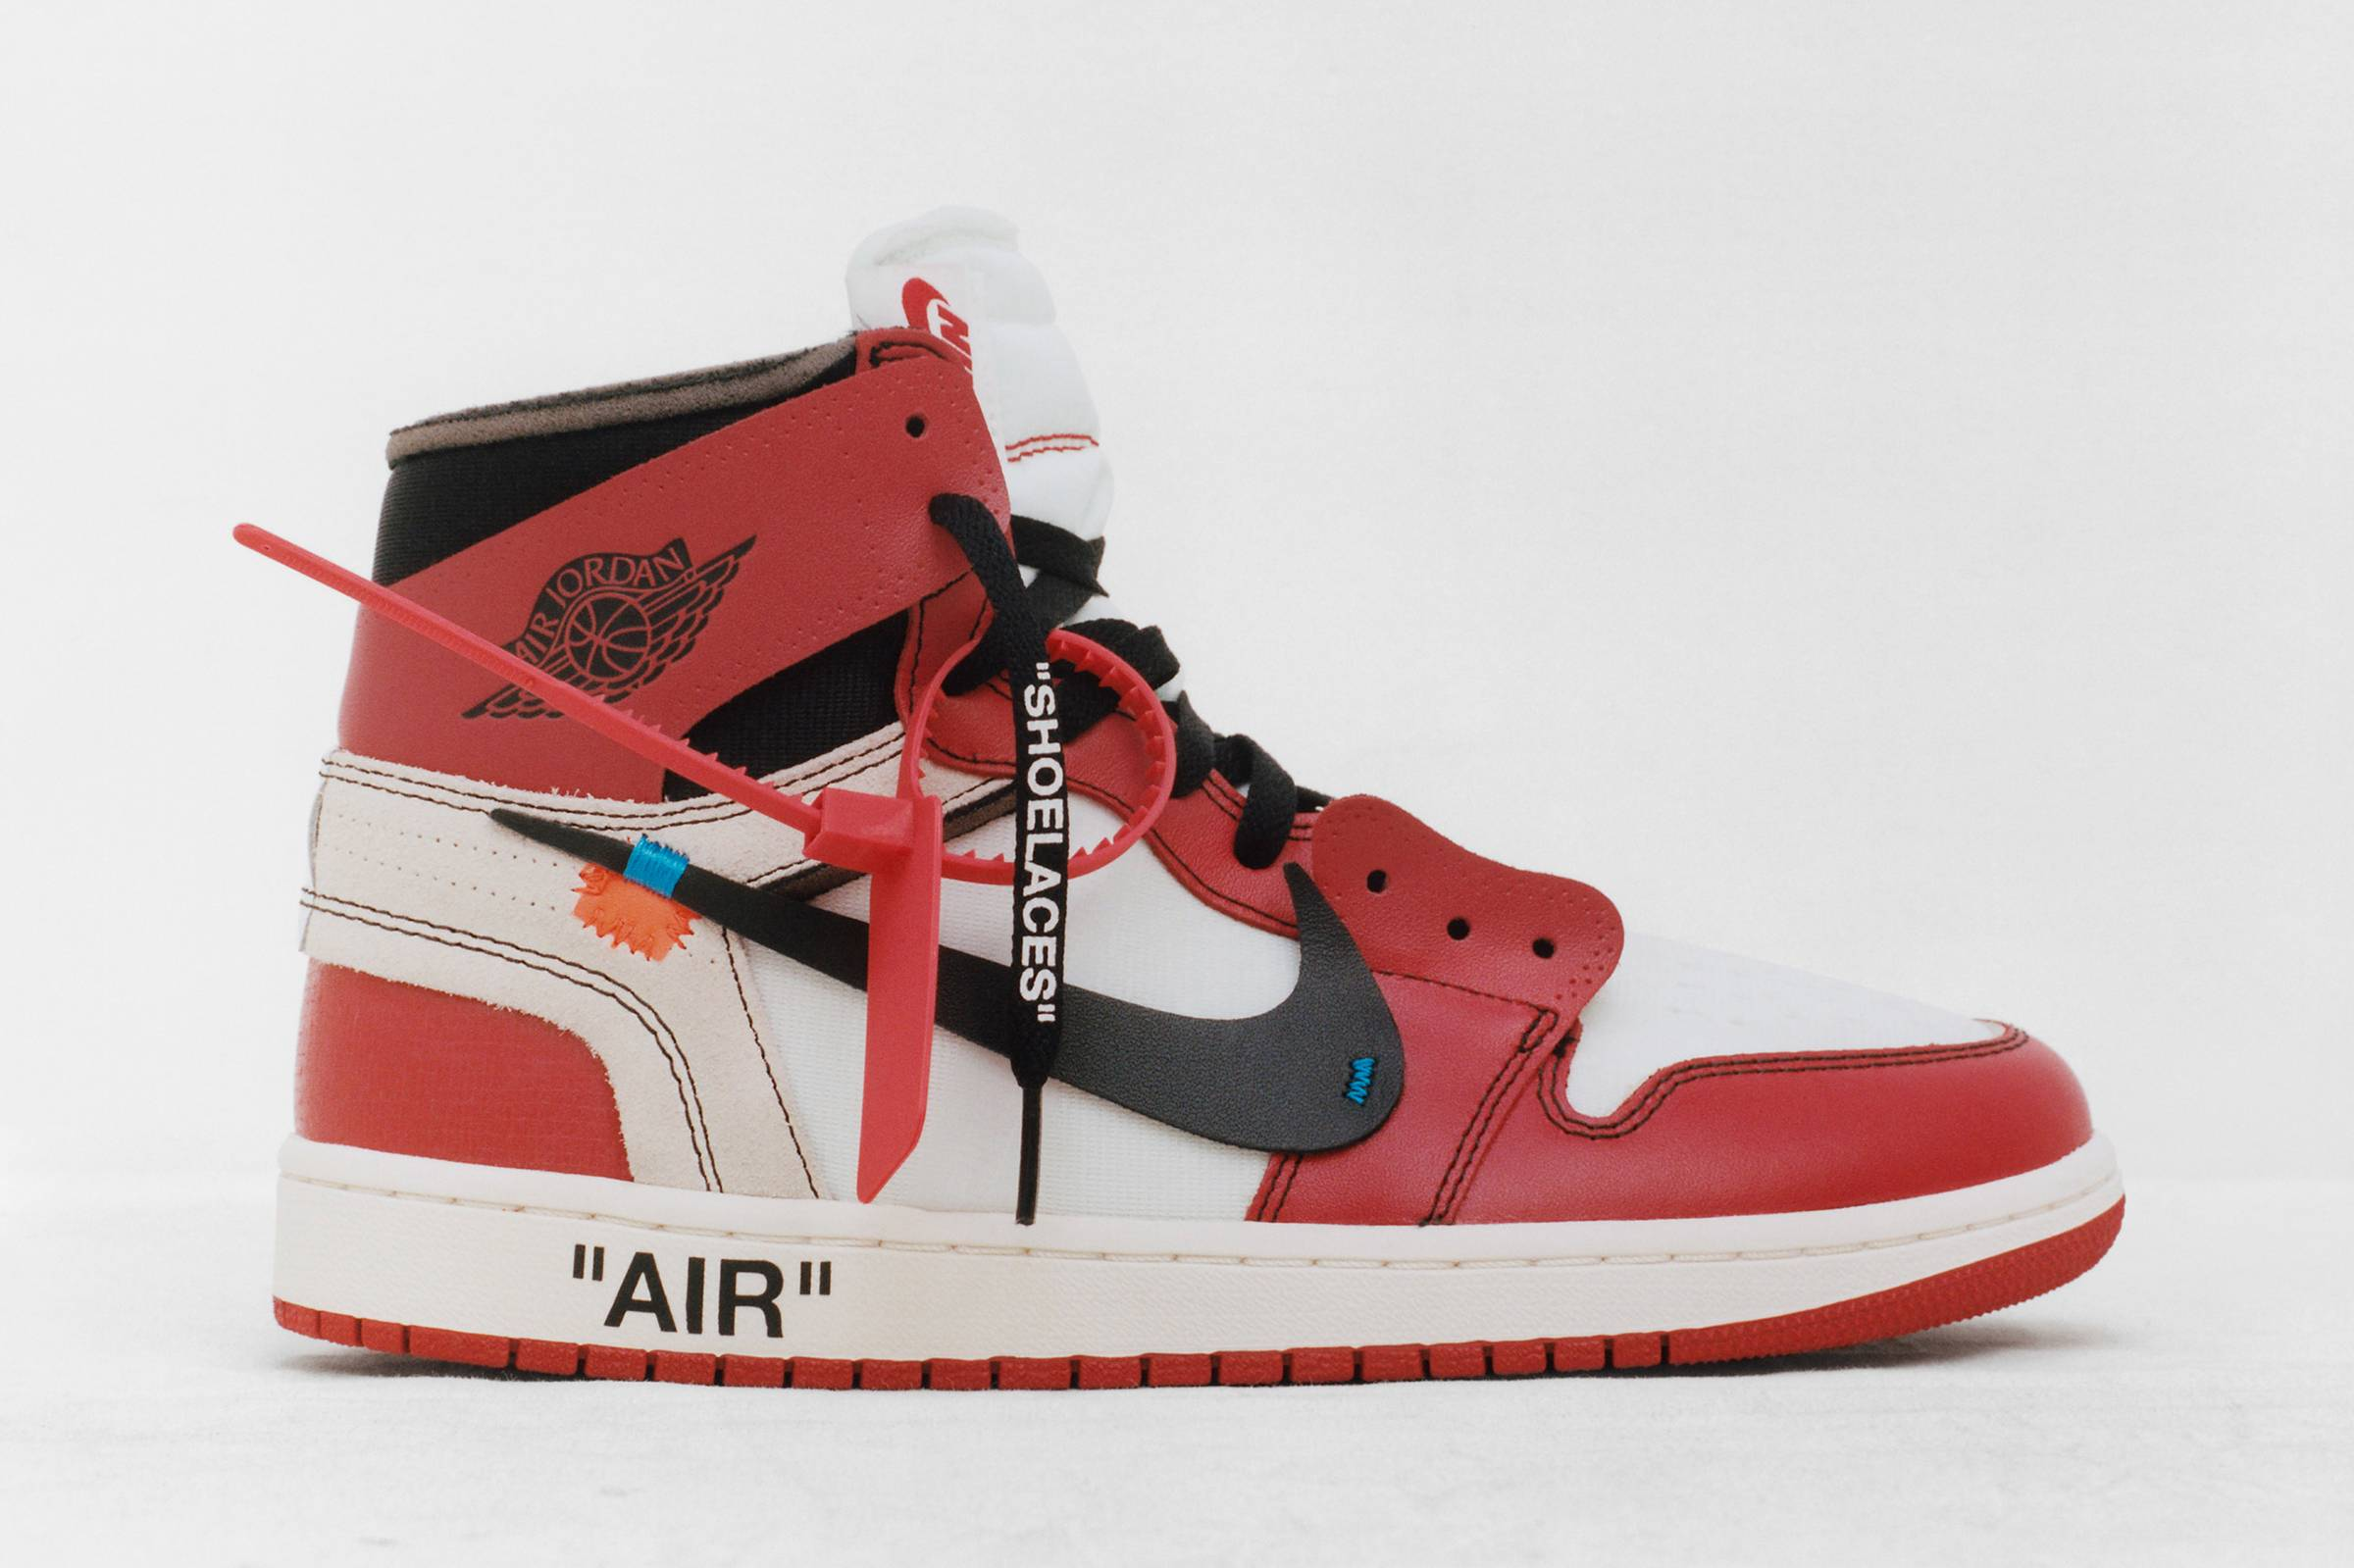 a433cac17e3f8c The One That Started It All  A History of the Jordan 1 - Jordan 1 ...